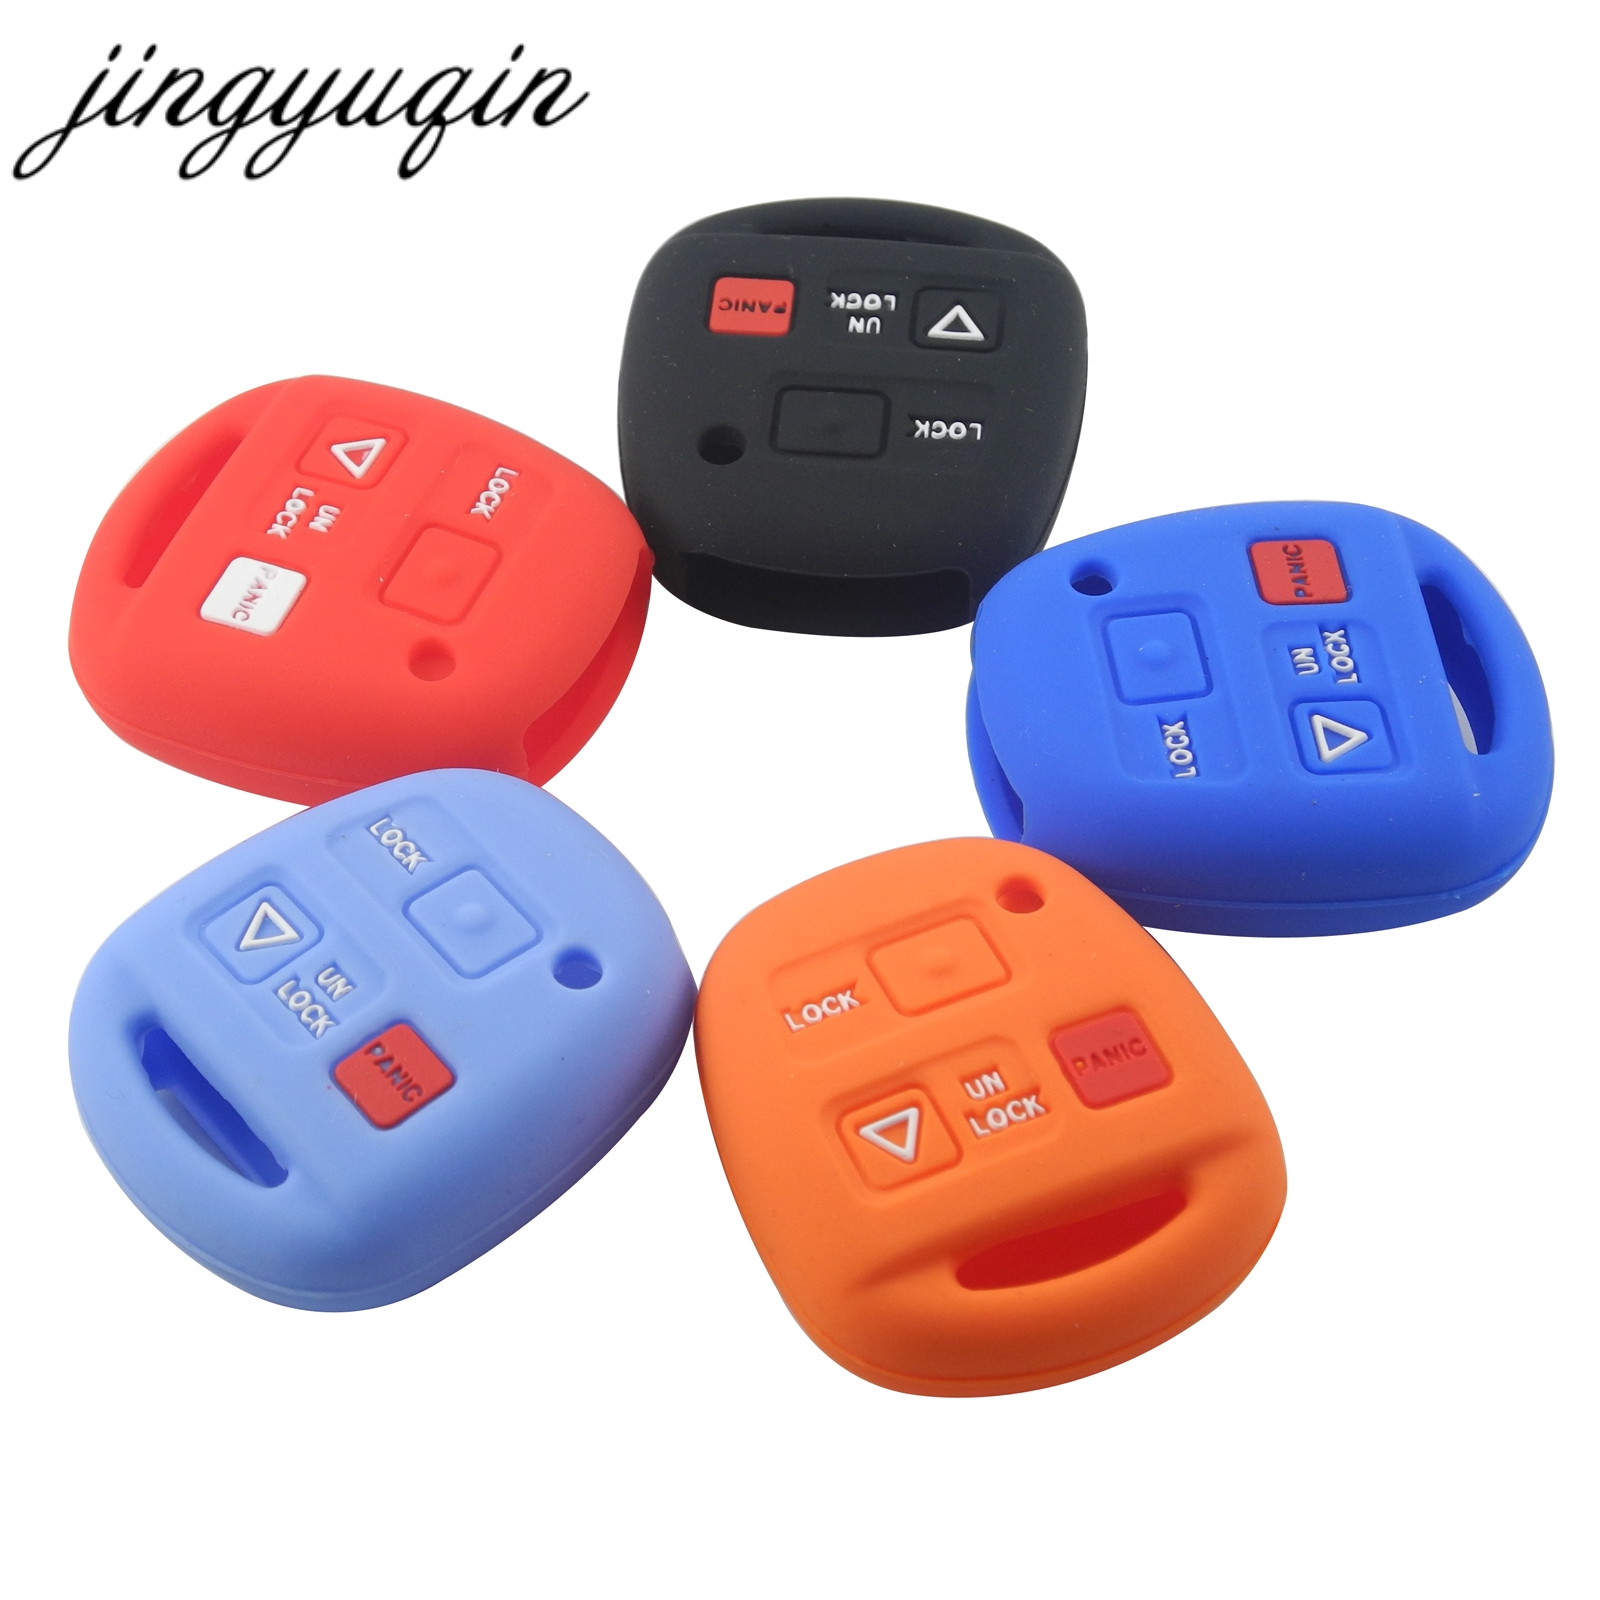 jingyuqin 15pcs Silicone Car <font><b>Key</b></font> Cover 3 Buttons Remote Car <font><b>Key</b></font> <font><b>Case</b></font> Fob For <font><b>Lexus</b></font> <font><b>RX300</b></font> ES300 image